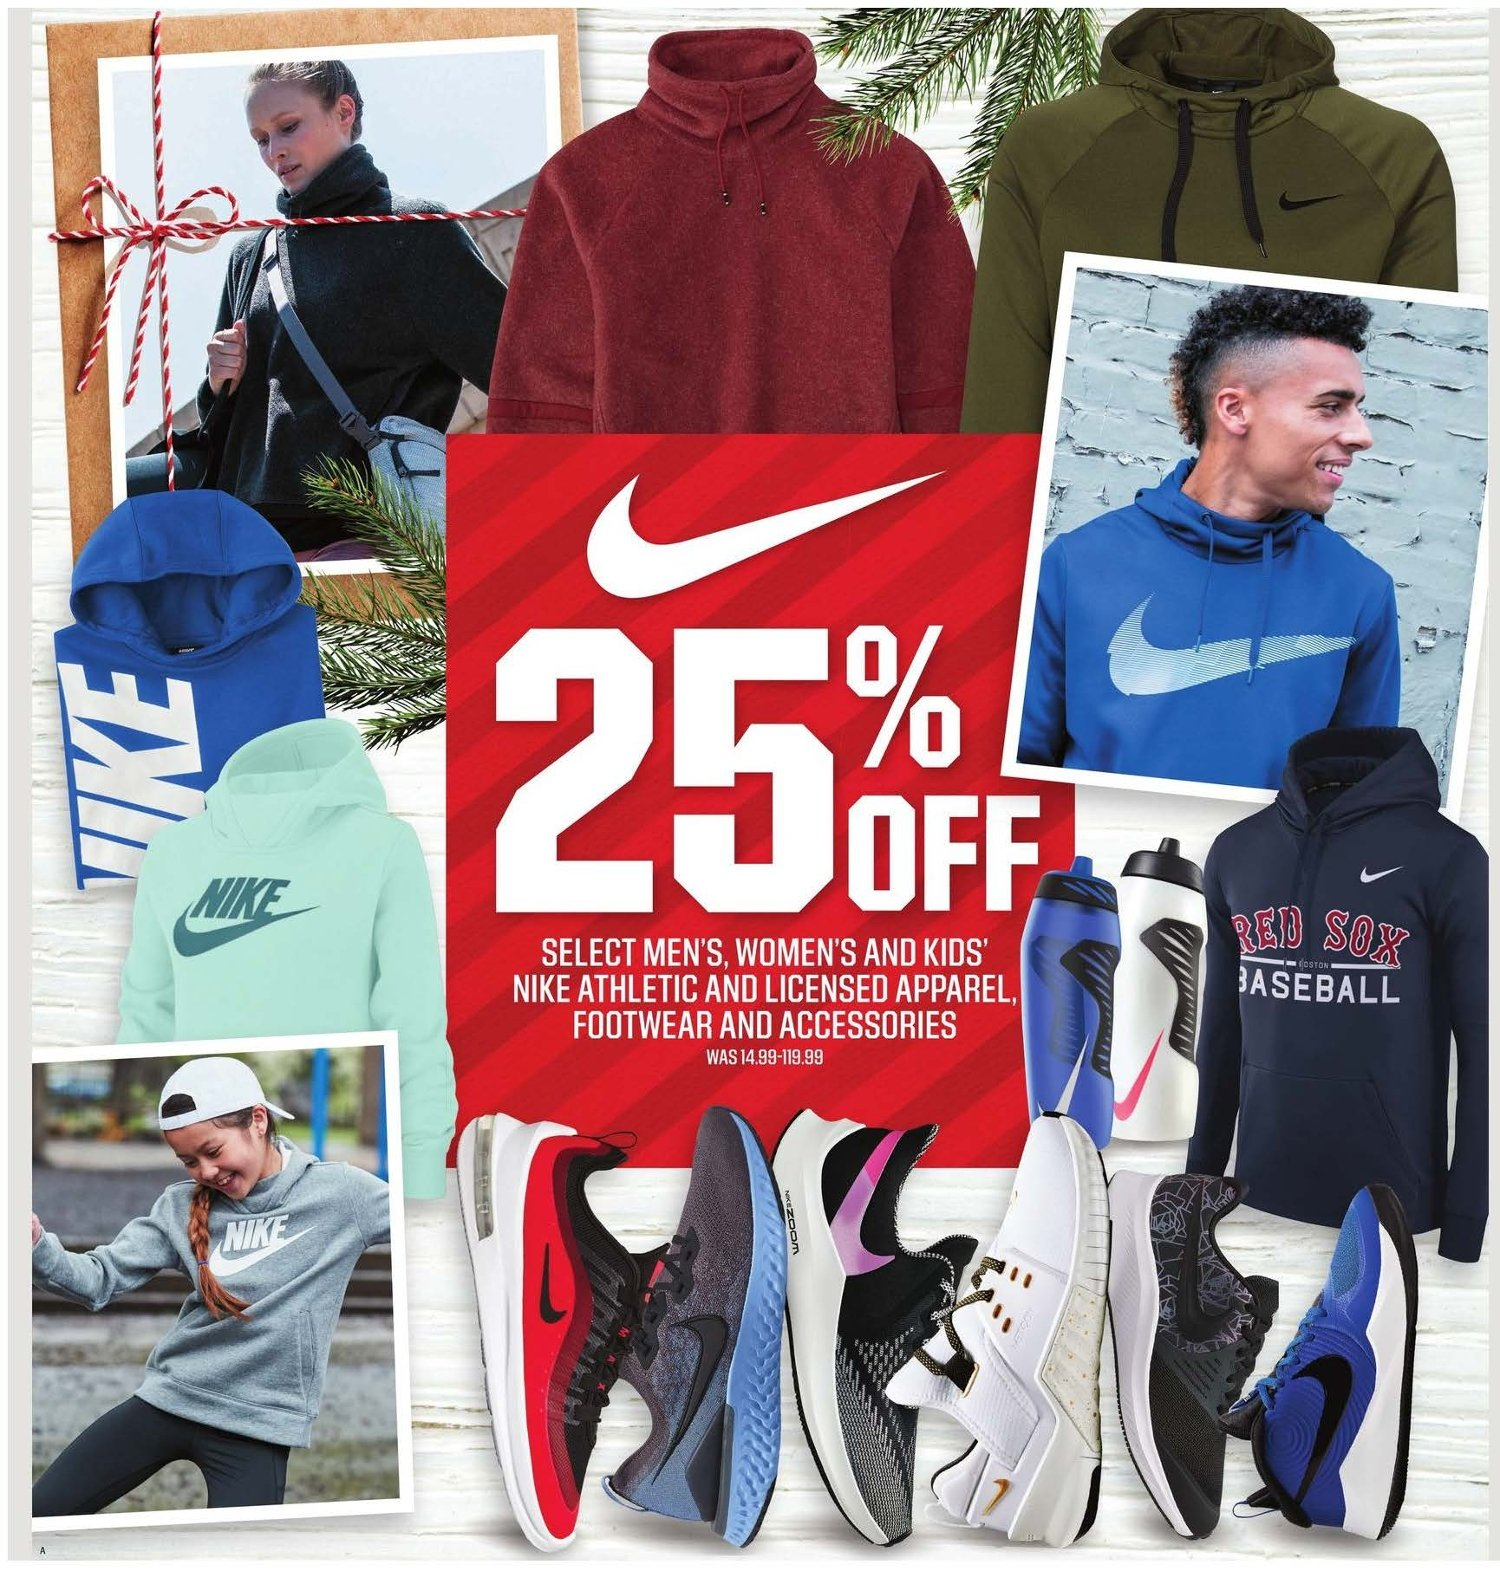 Dick's Sporting Goods Cyber Monday 2019 Page 3